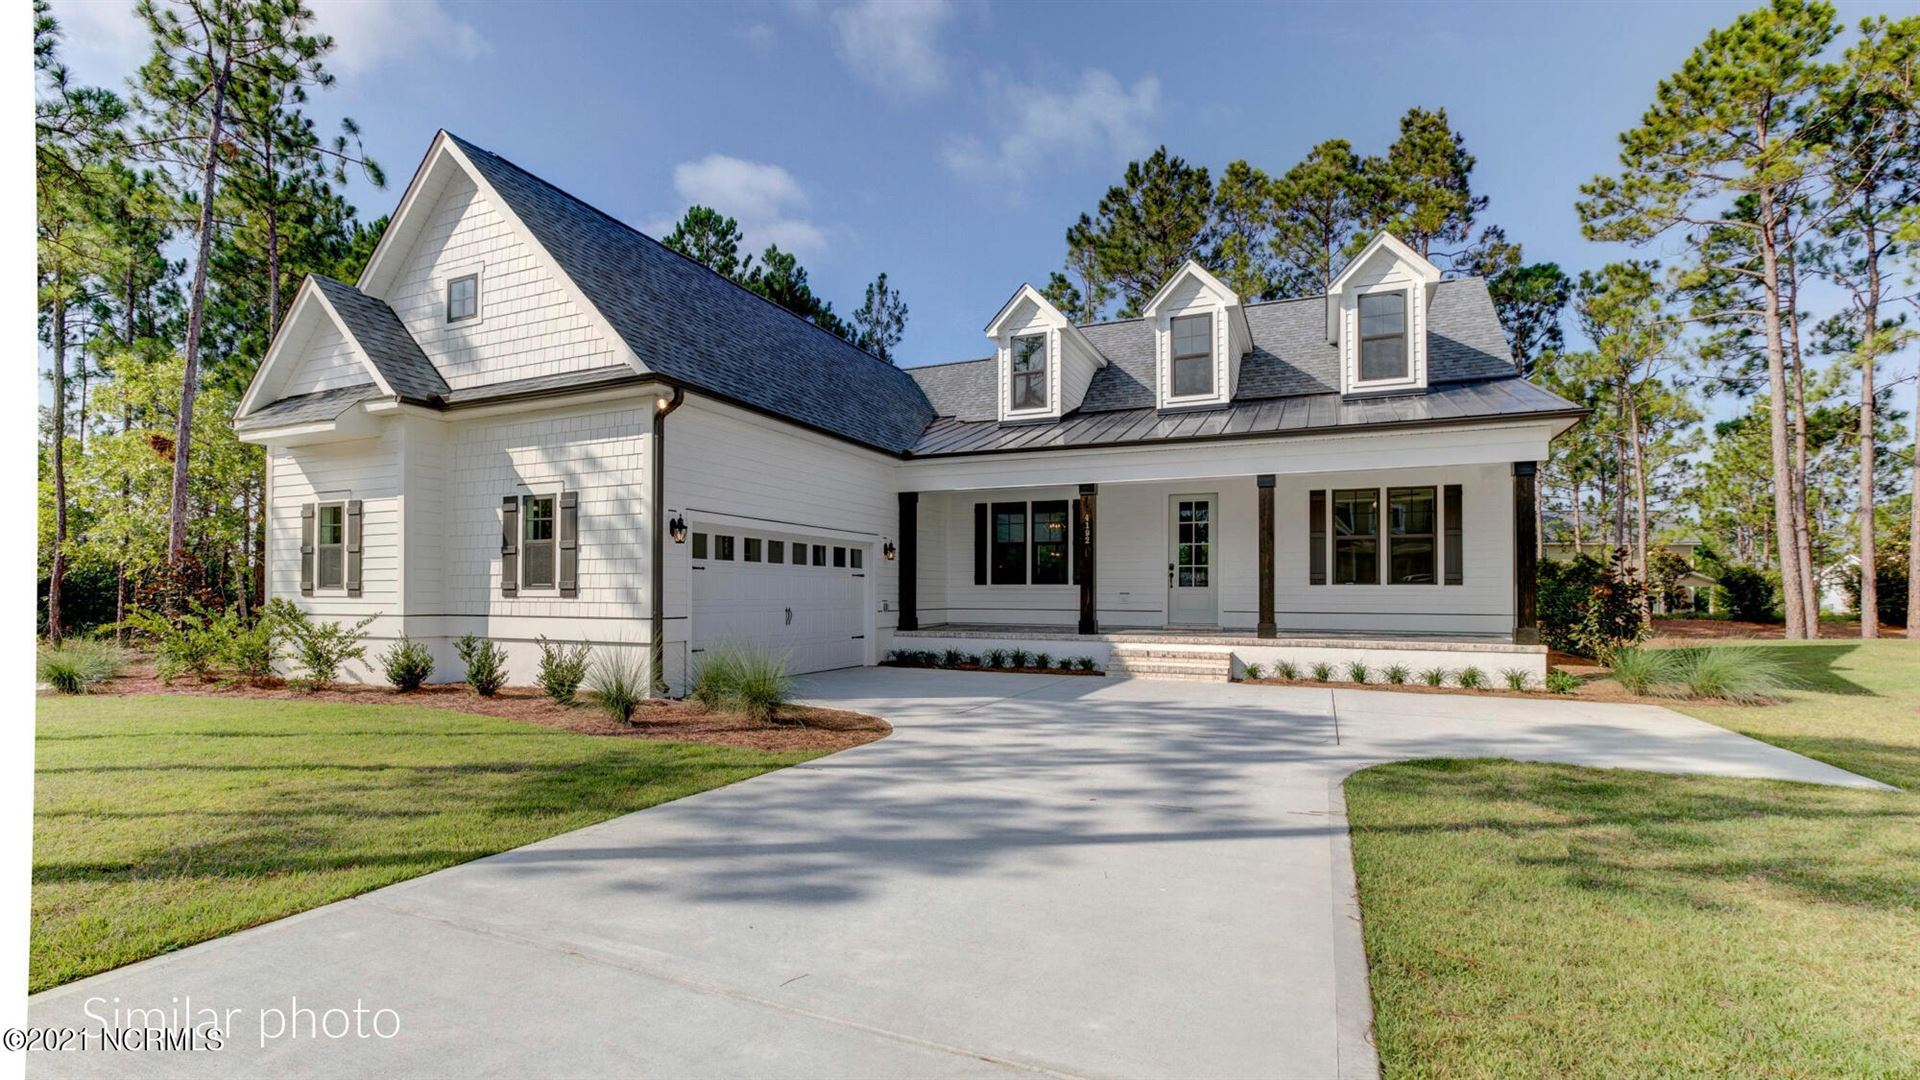 Photo for 1002 Mere Court #Lot 14, Leland, NC 28451 (MLS # 100260633)